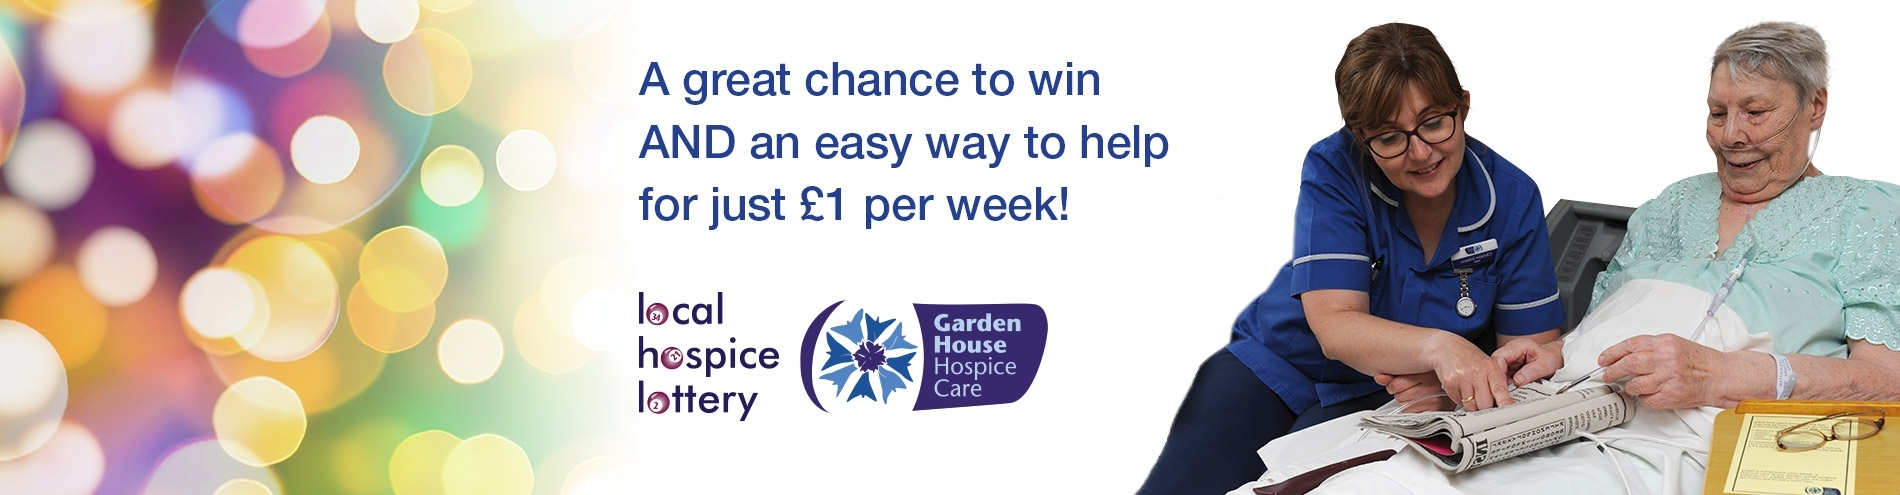 Garden House Hospice Care Needs Your Help - Local Hospice Lottery regarding Garden House Hospice Just Giving